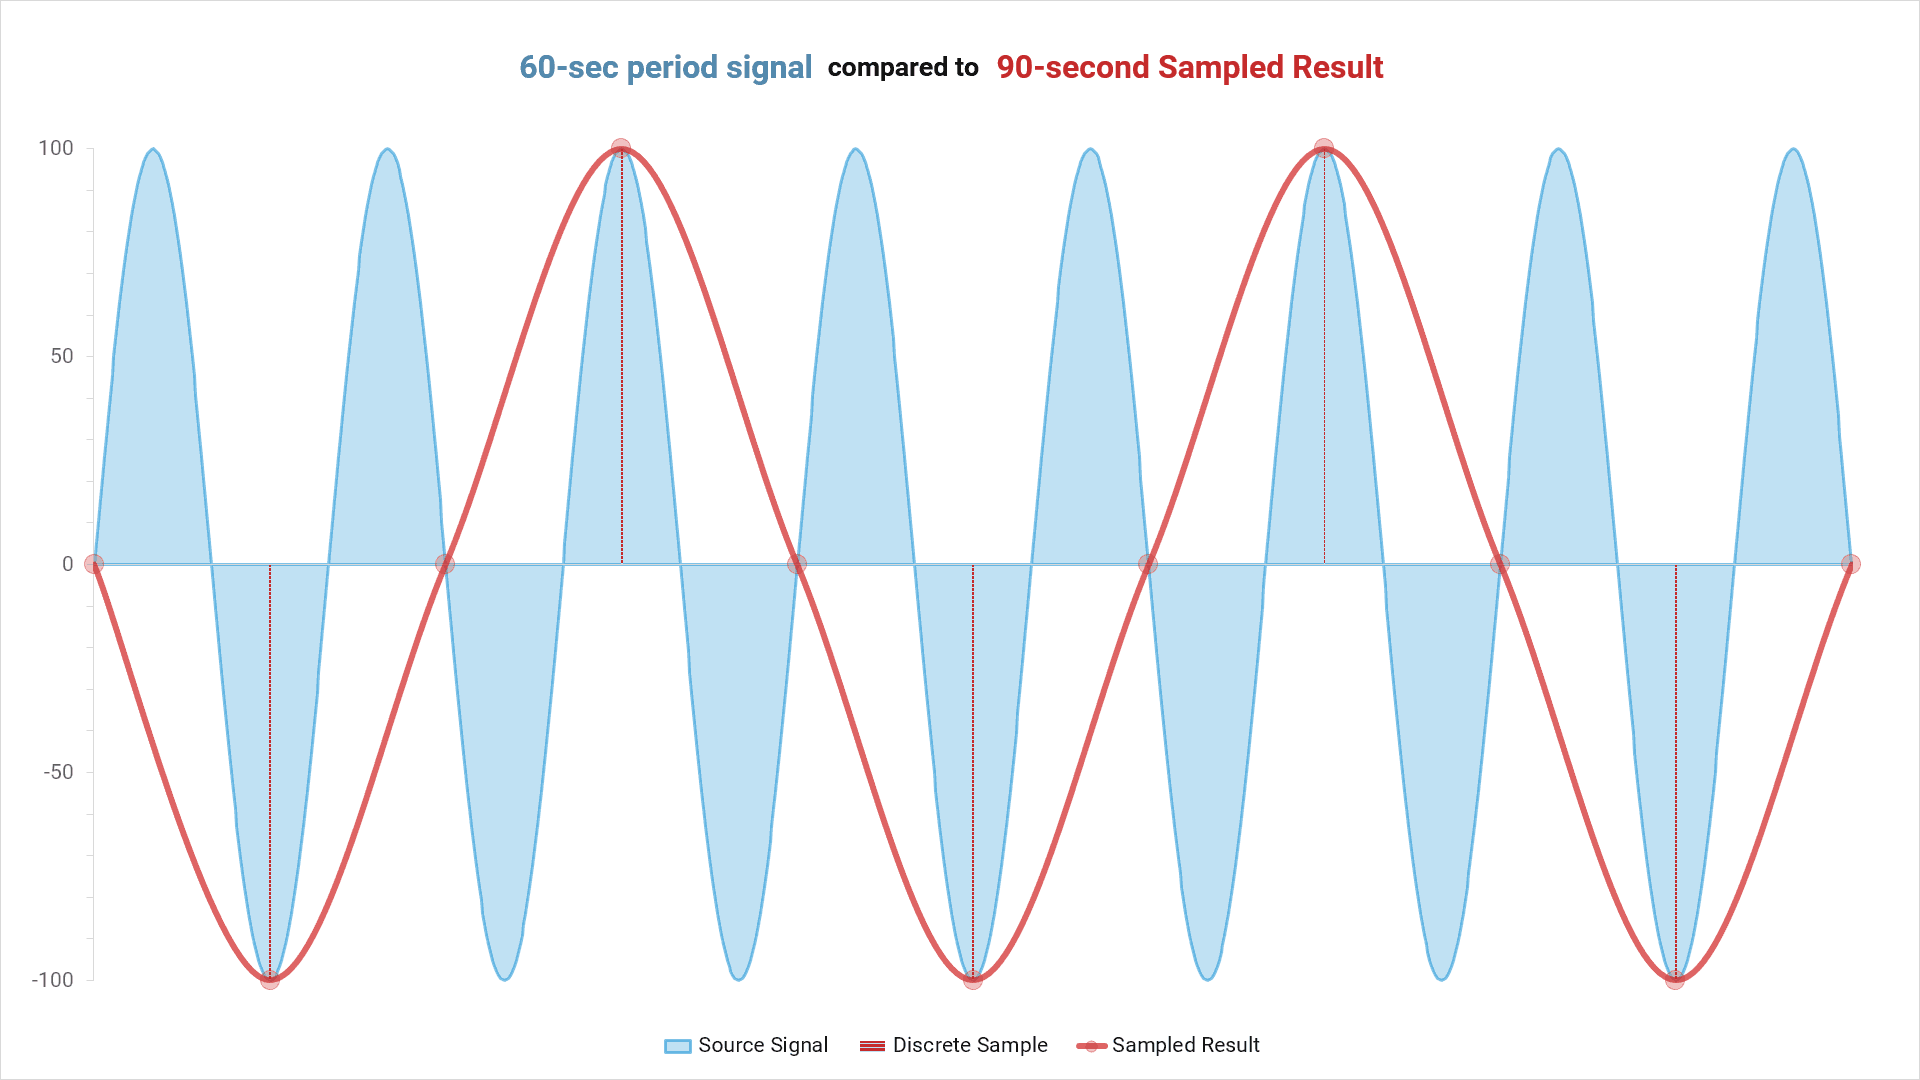 Aliasing: 60-second period signal compared to 90-second sampled result